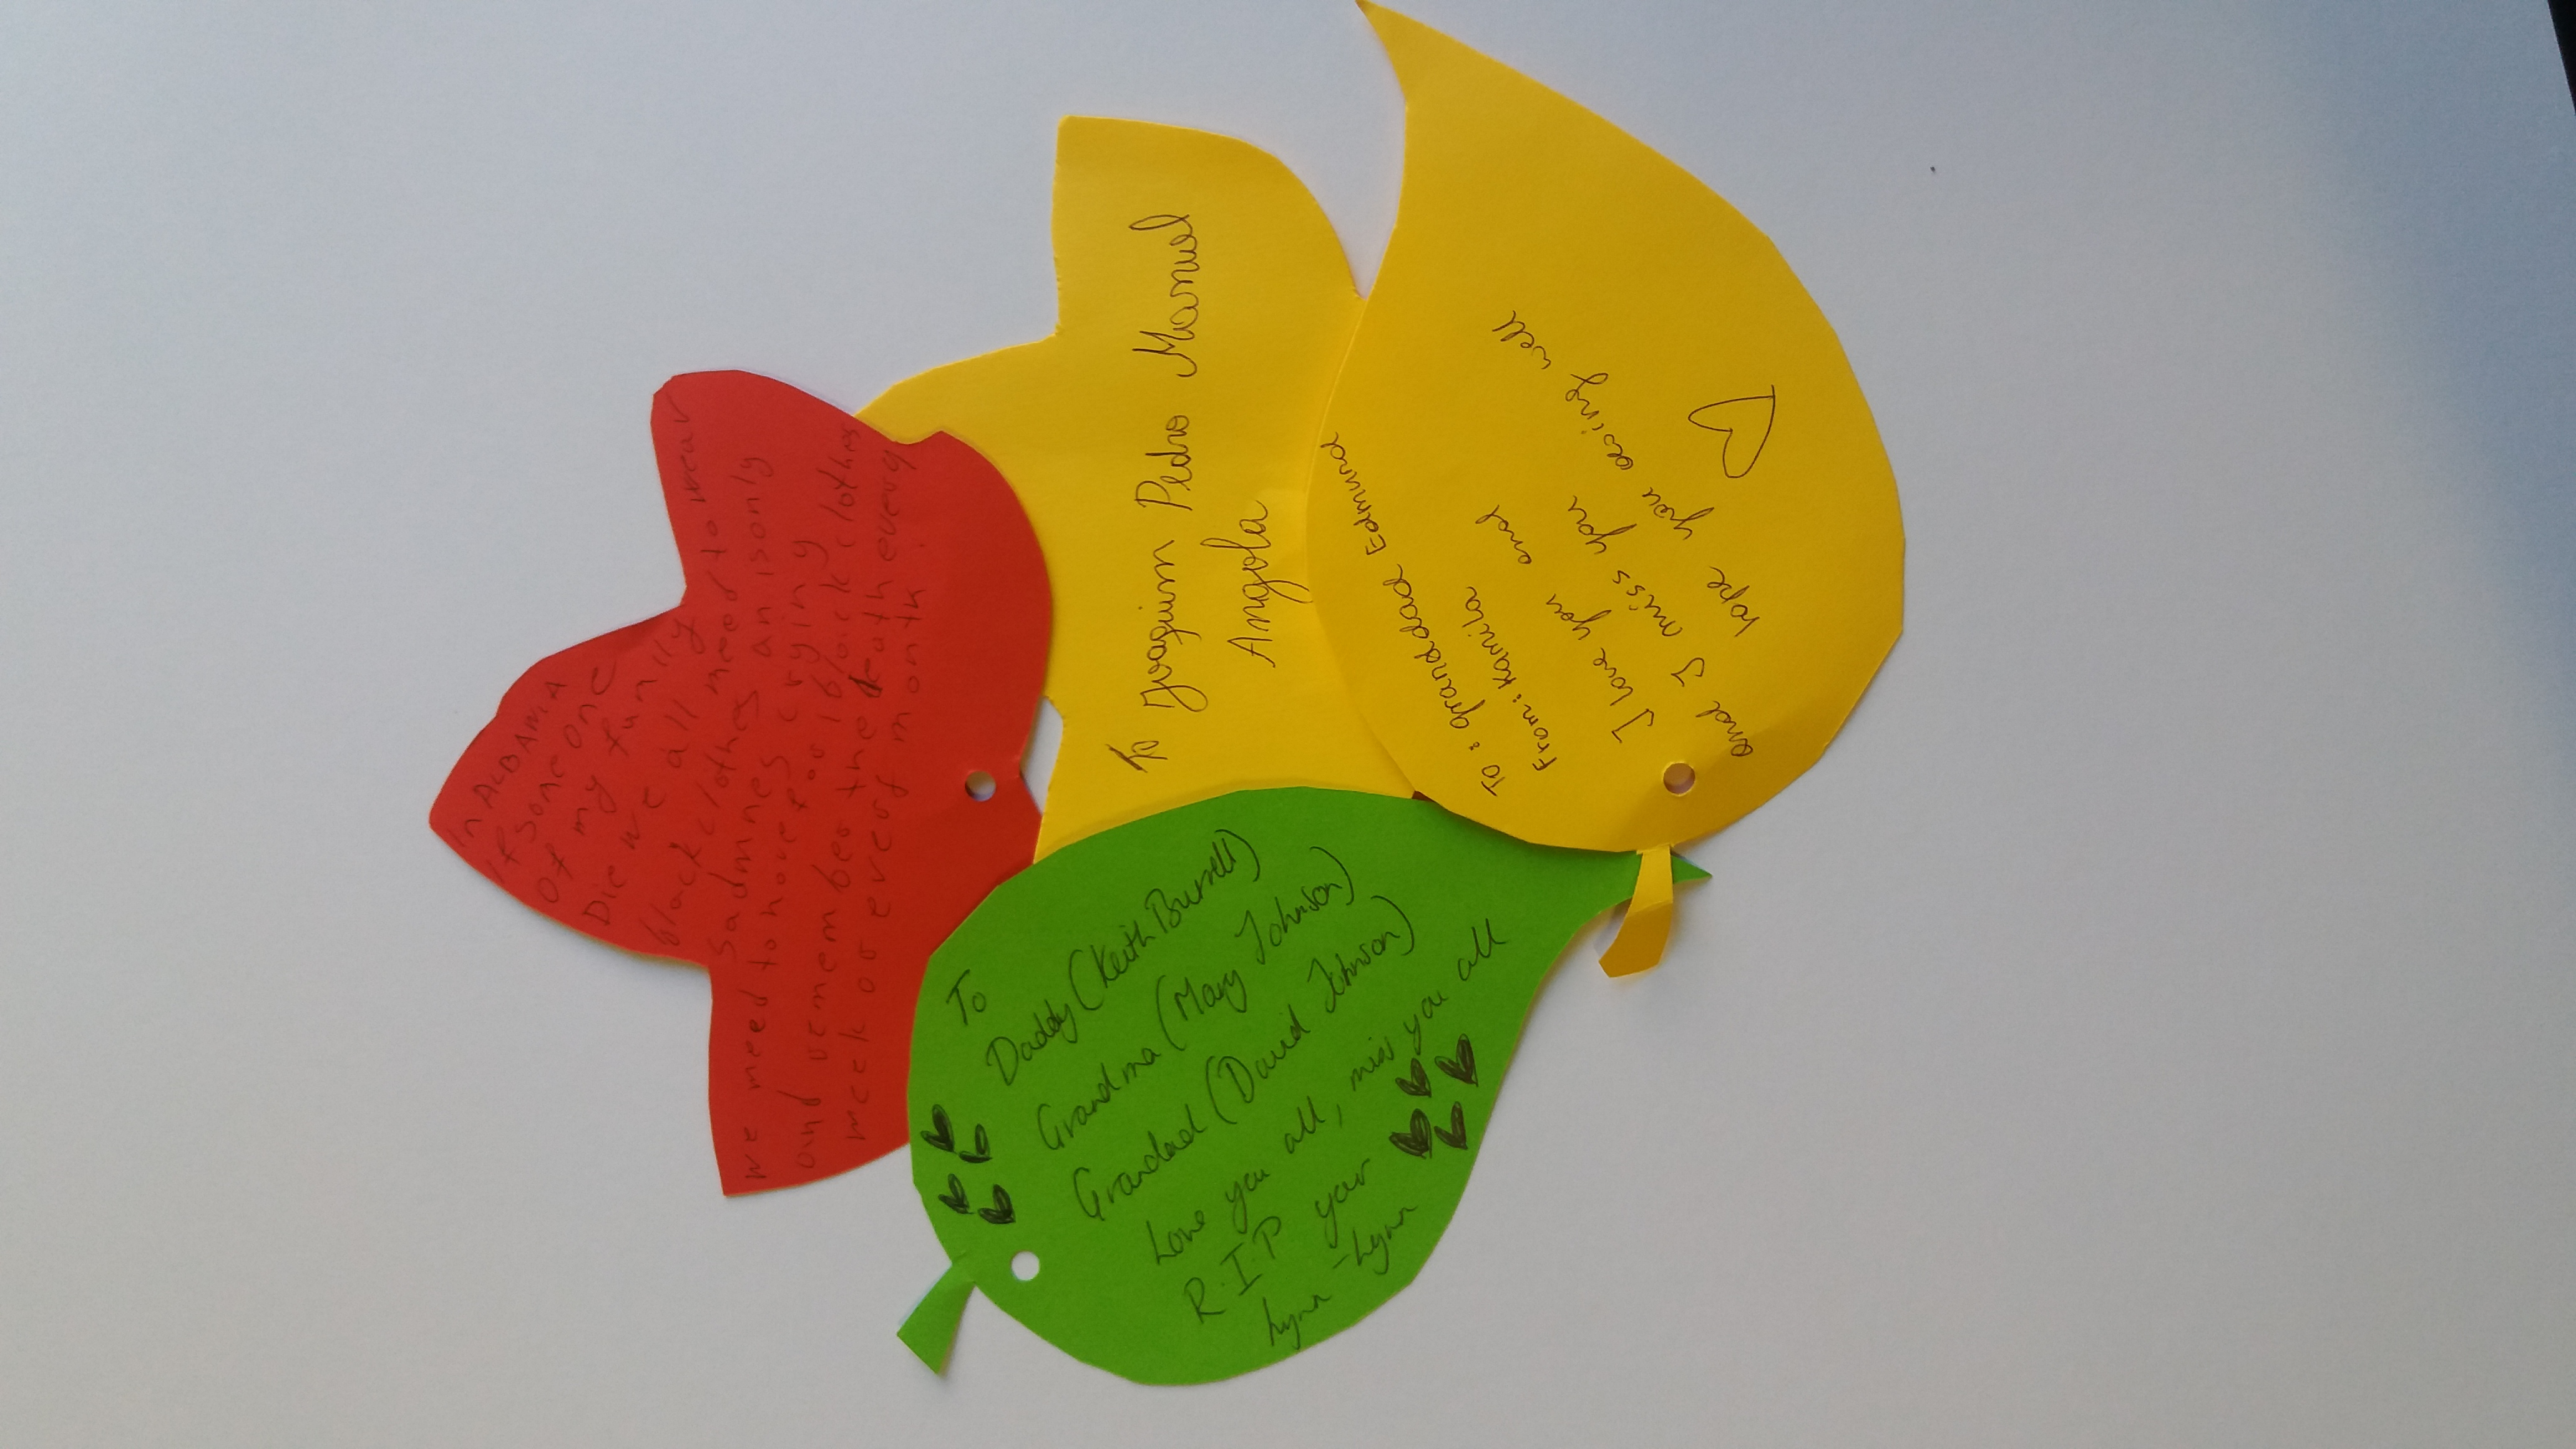 Black History Month 2016 Nottingham Library Nine Nights Exhibition Rememberance Tree (3)